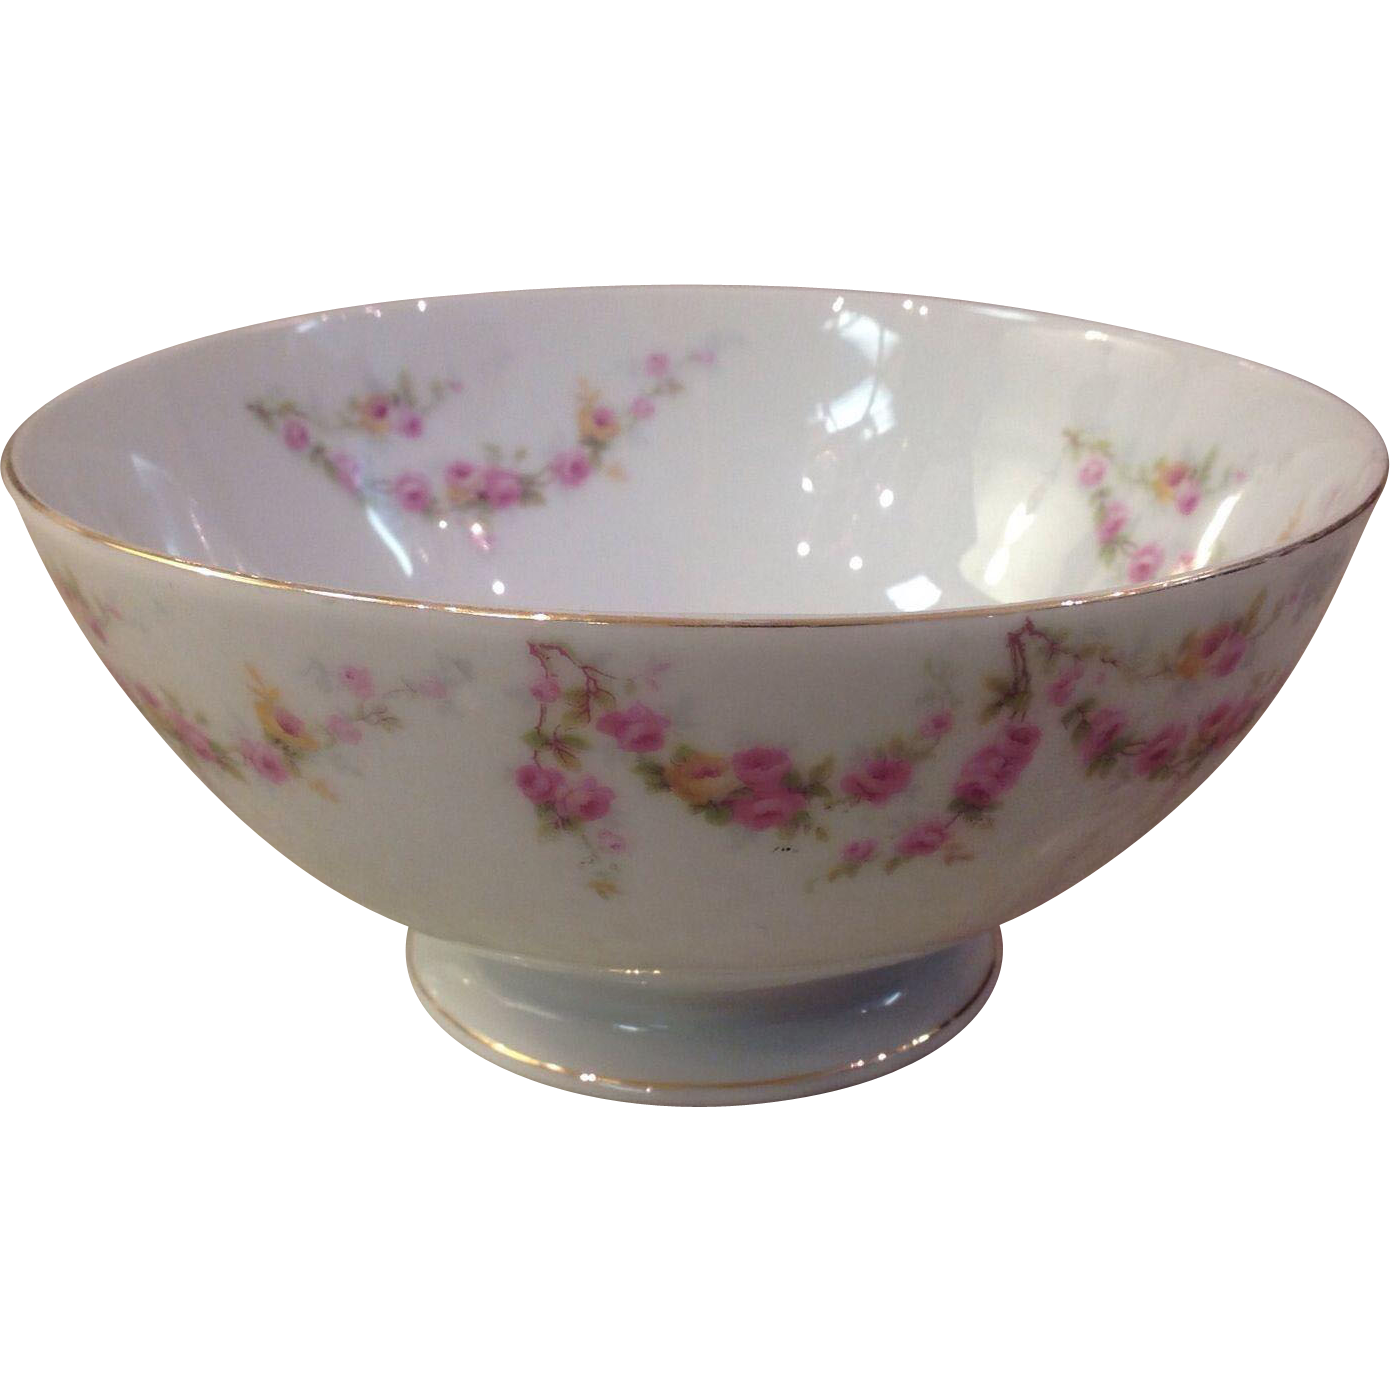 Royal Schwarzburg China RSC15 Waste Bowl Pink Rose Garland Design c.1915